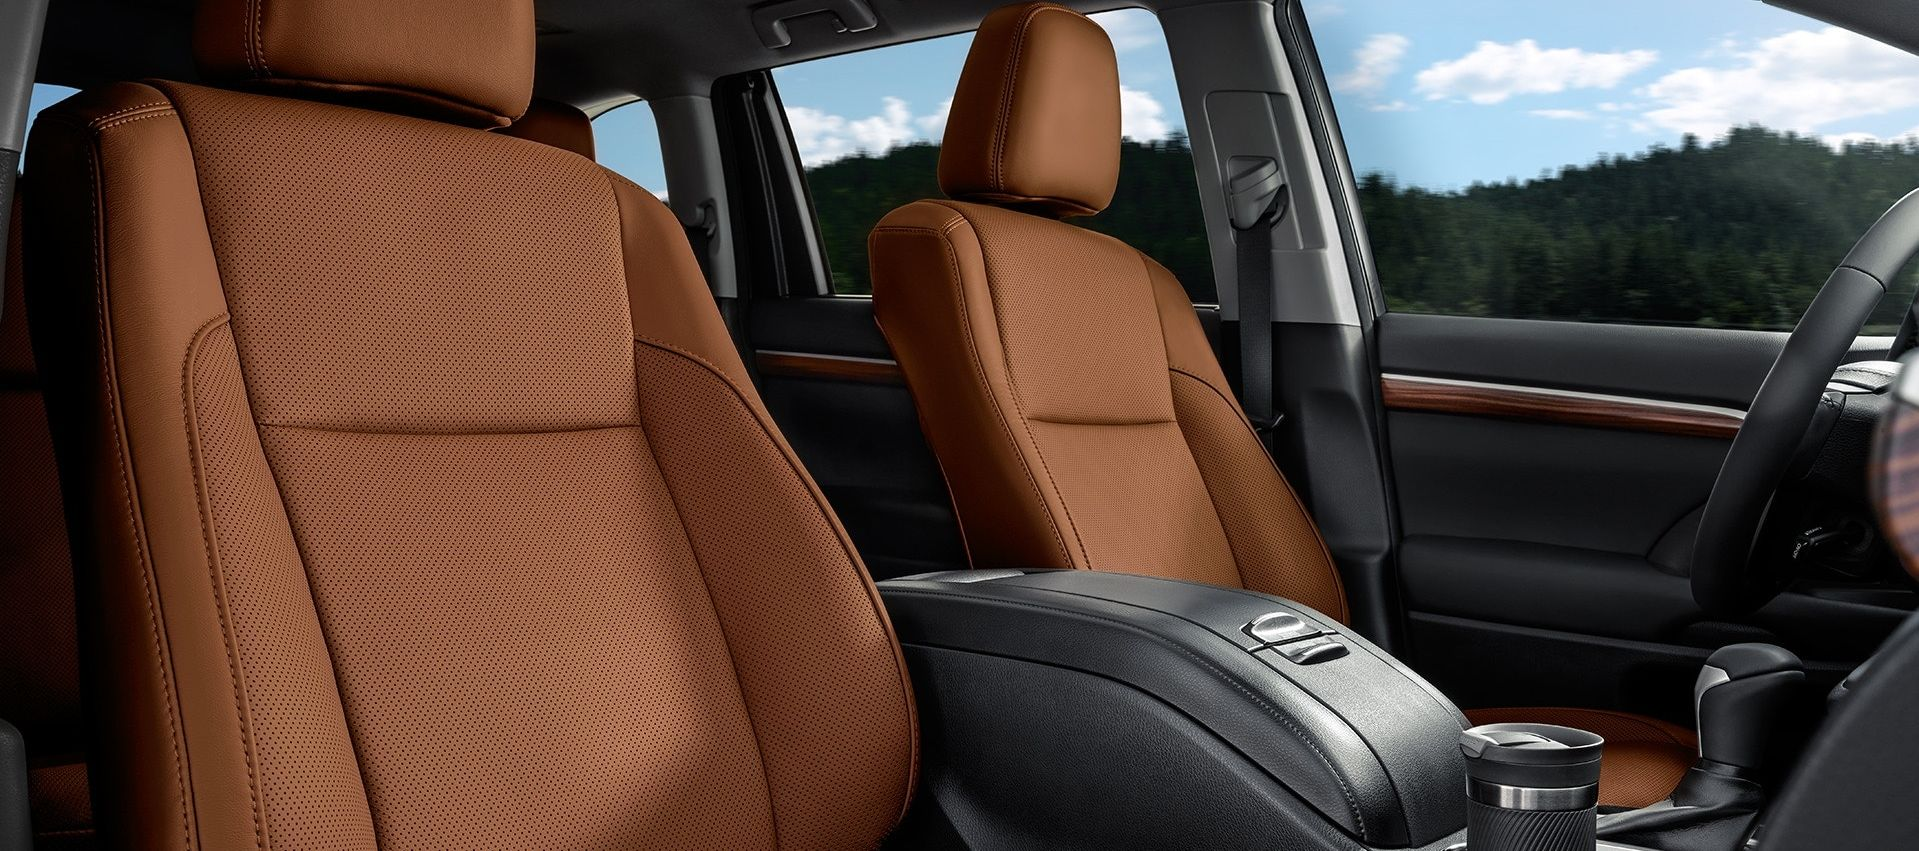 The 2019 Toyota Highlander's Supple Seating Options